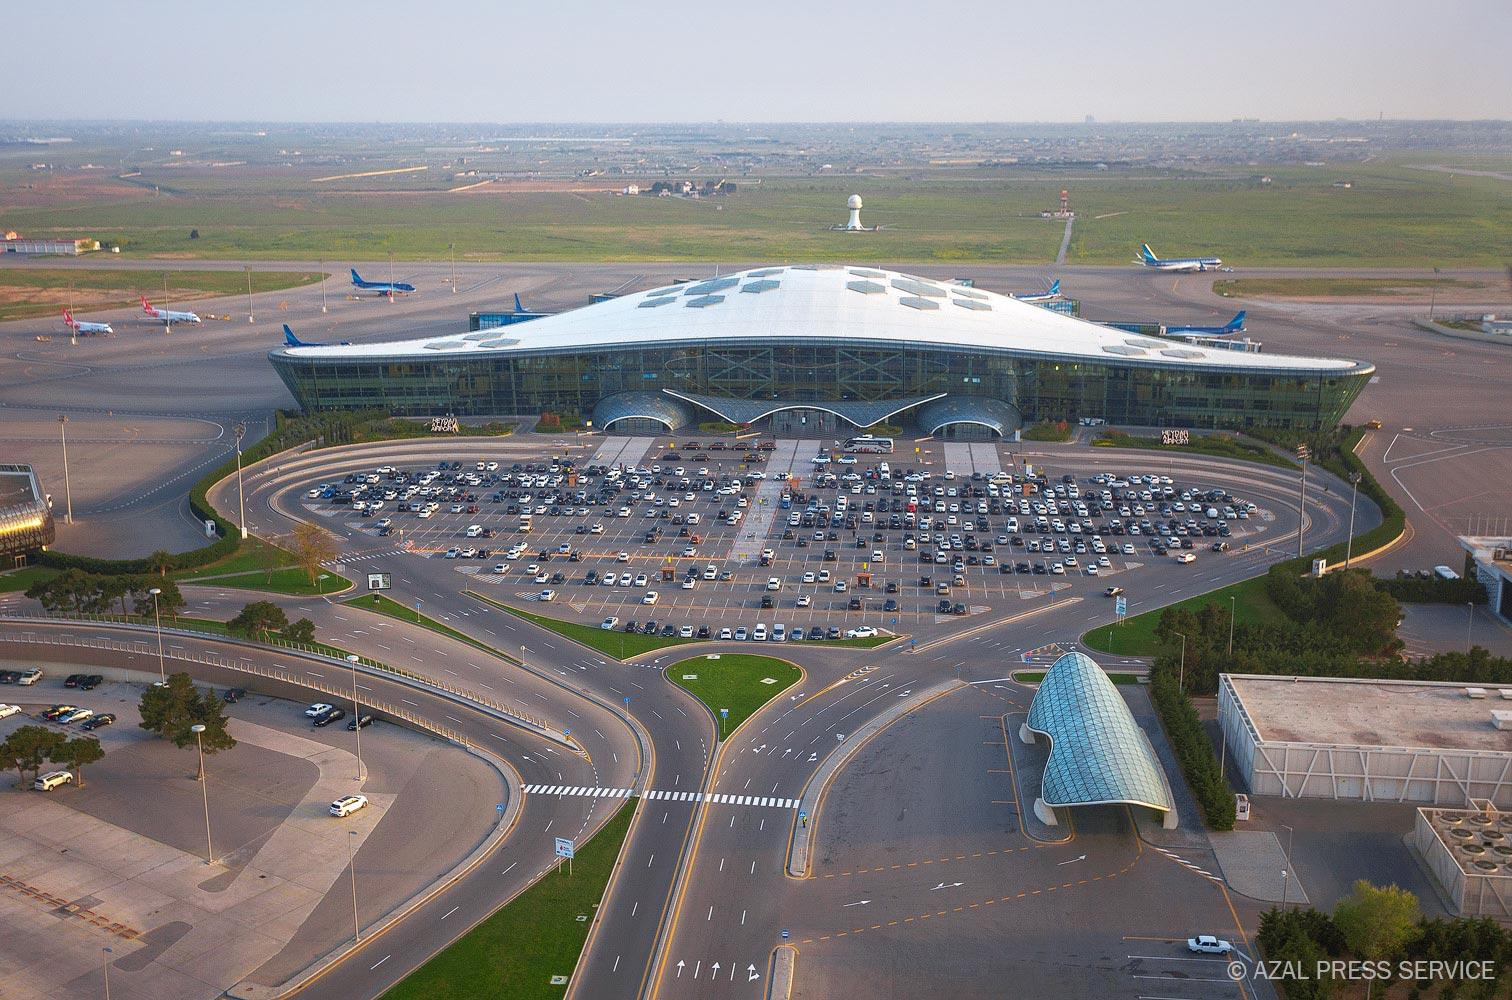 Heydar Aliyev İnternational Airport expands geography of flights and attracts new airlines